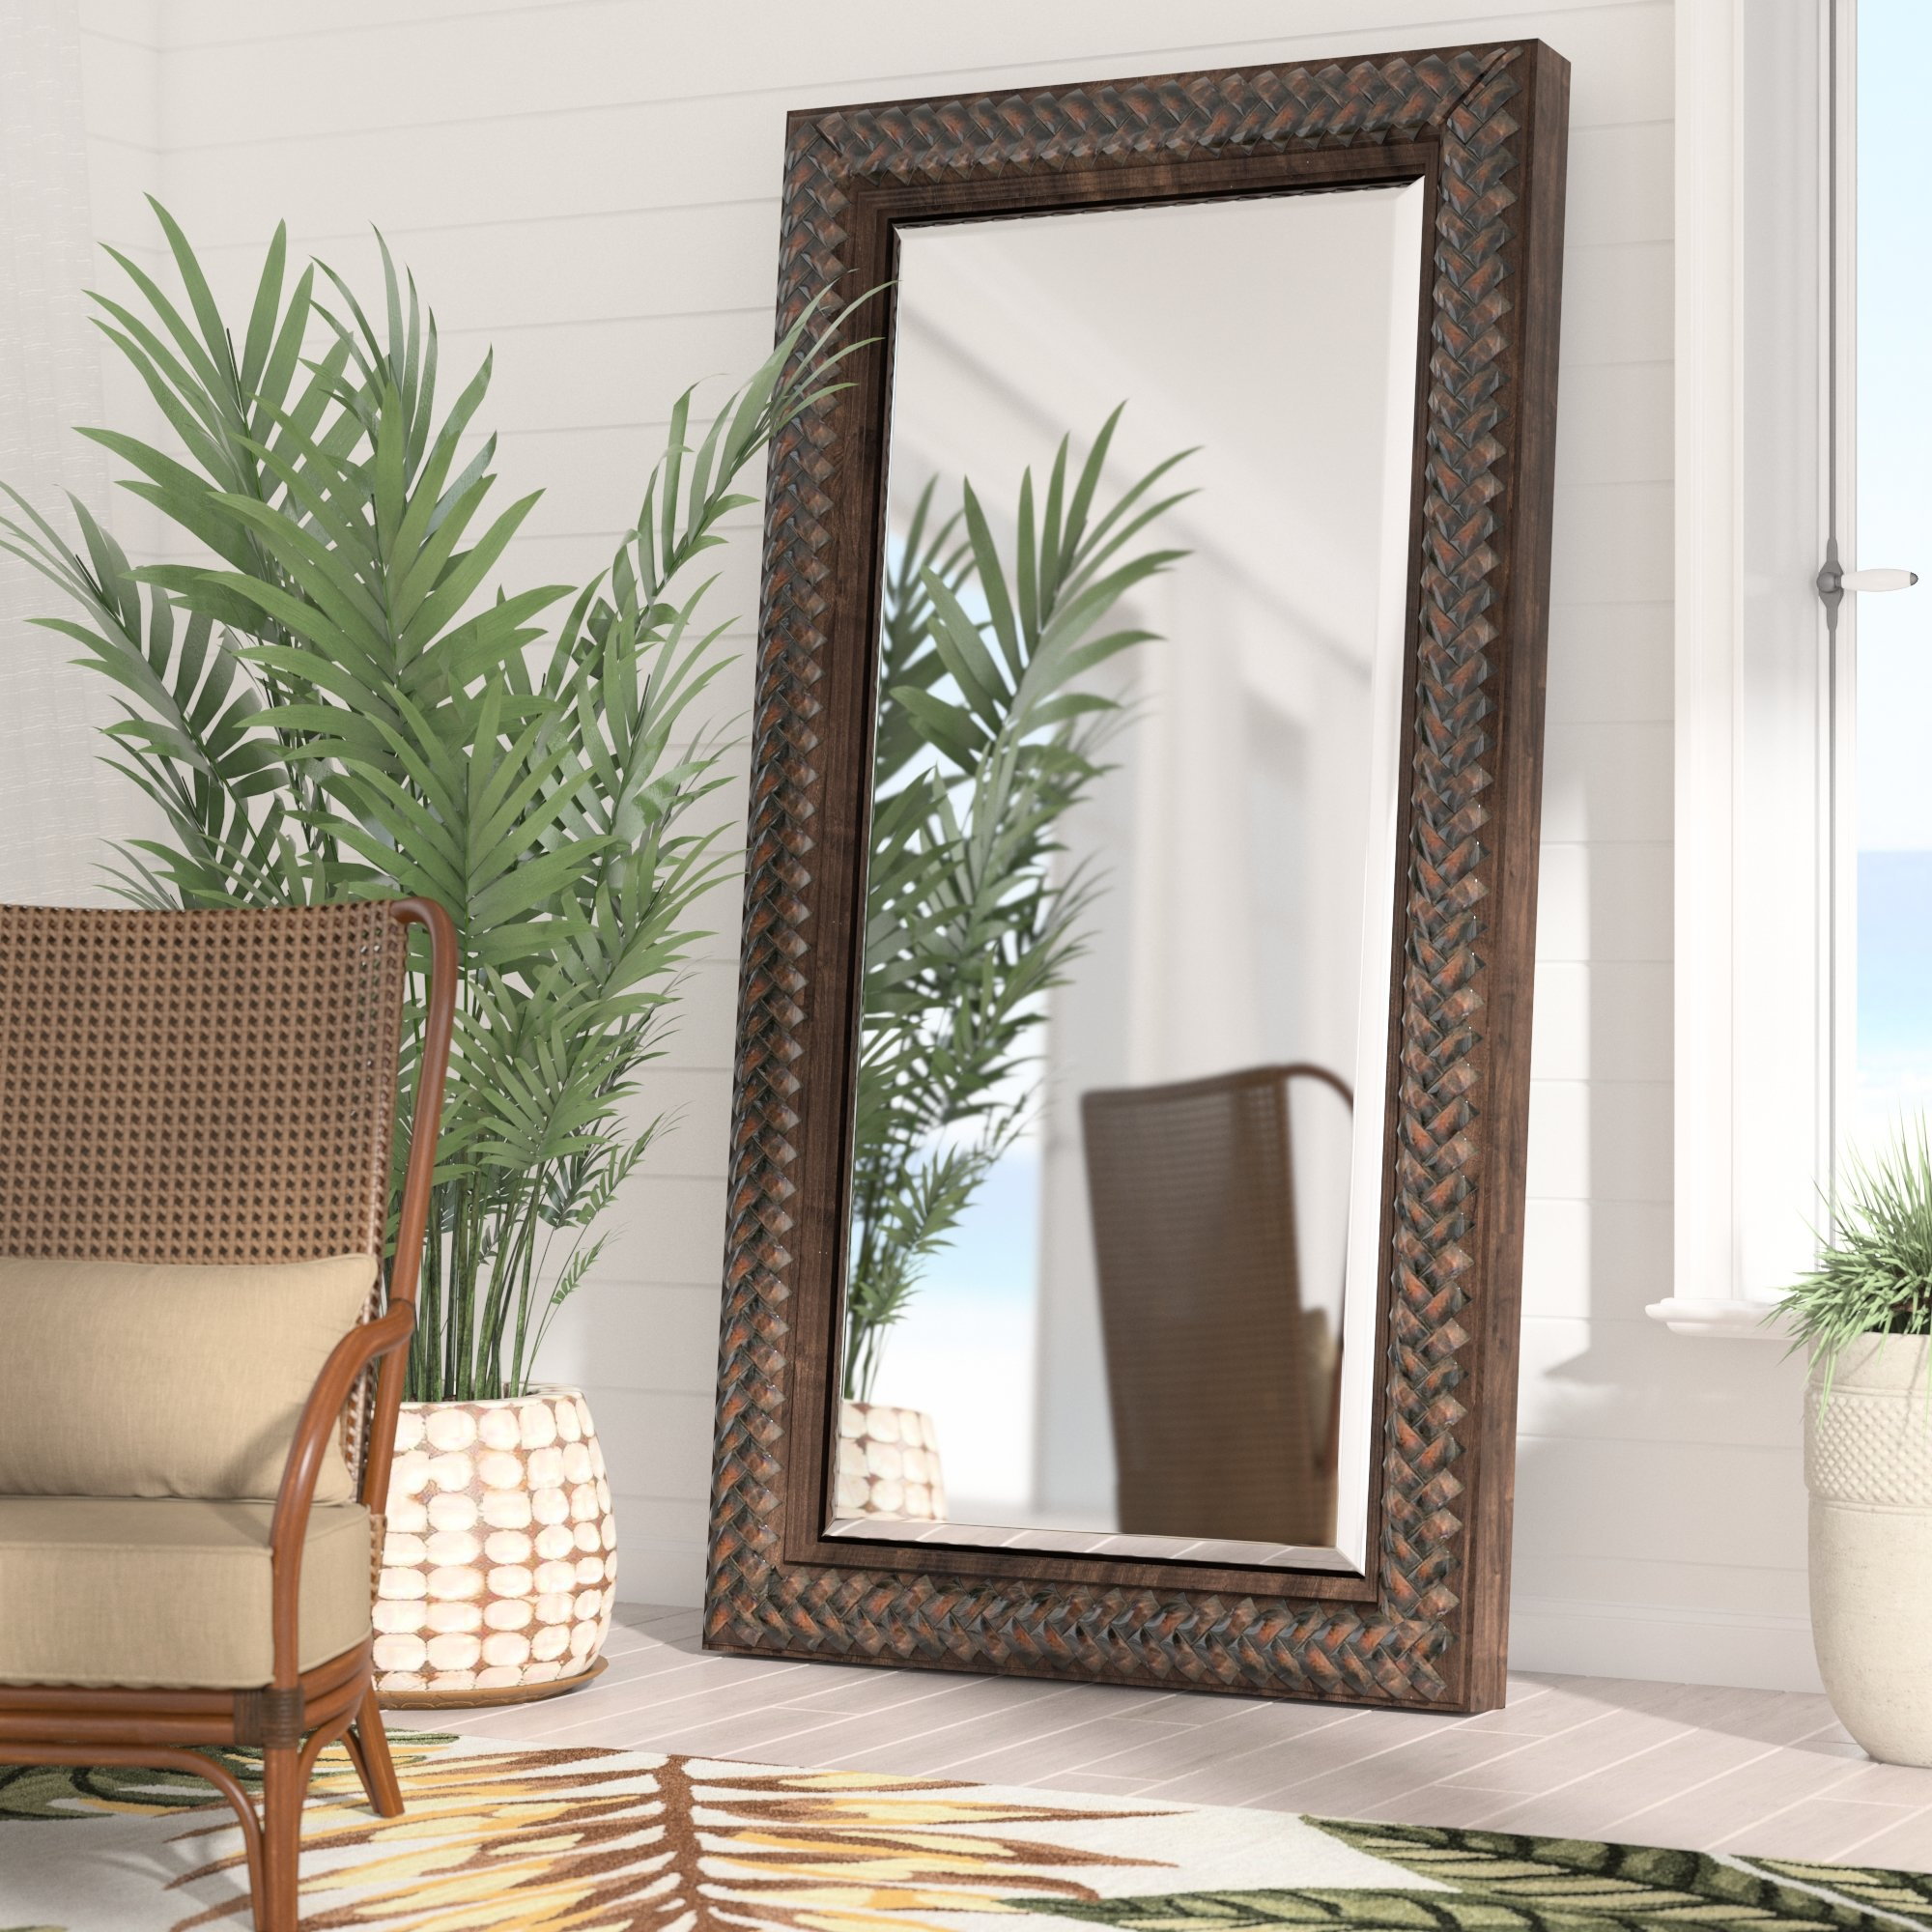 Farmhouse & Rustic Floor Mirrors | Birch Lane Throughout Dalessio Wide Tall Full Length Mirrors (Image 10 of 20)